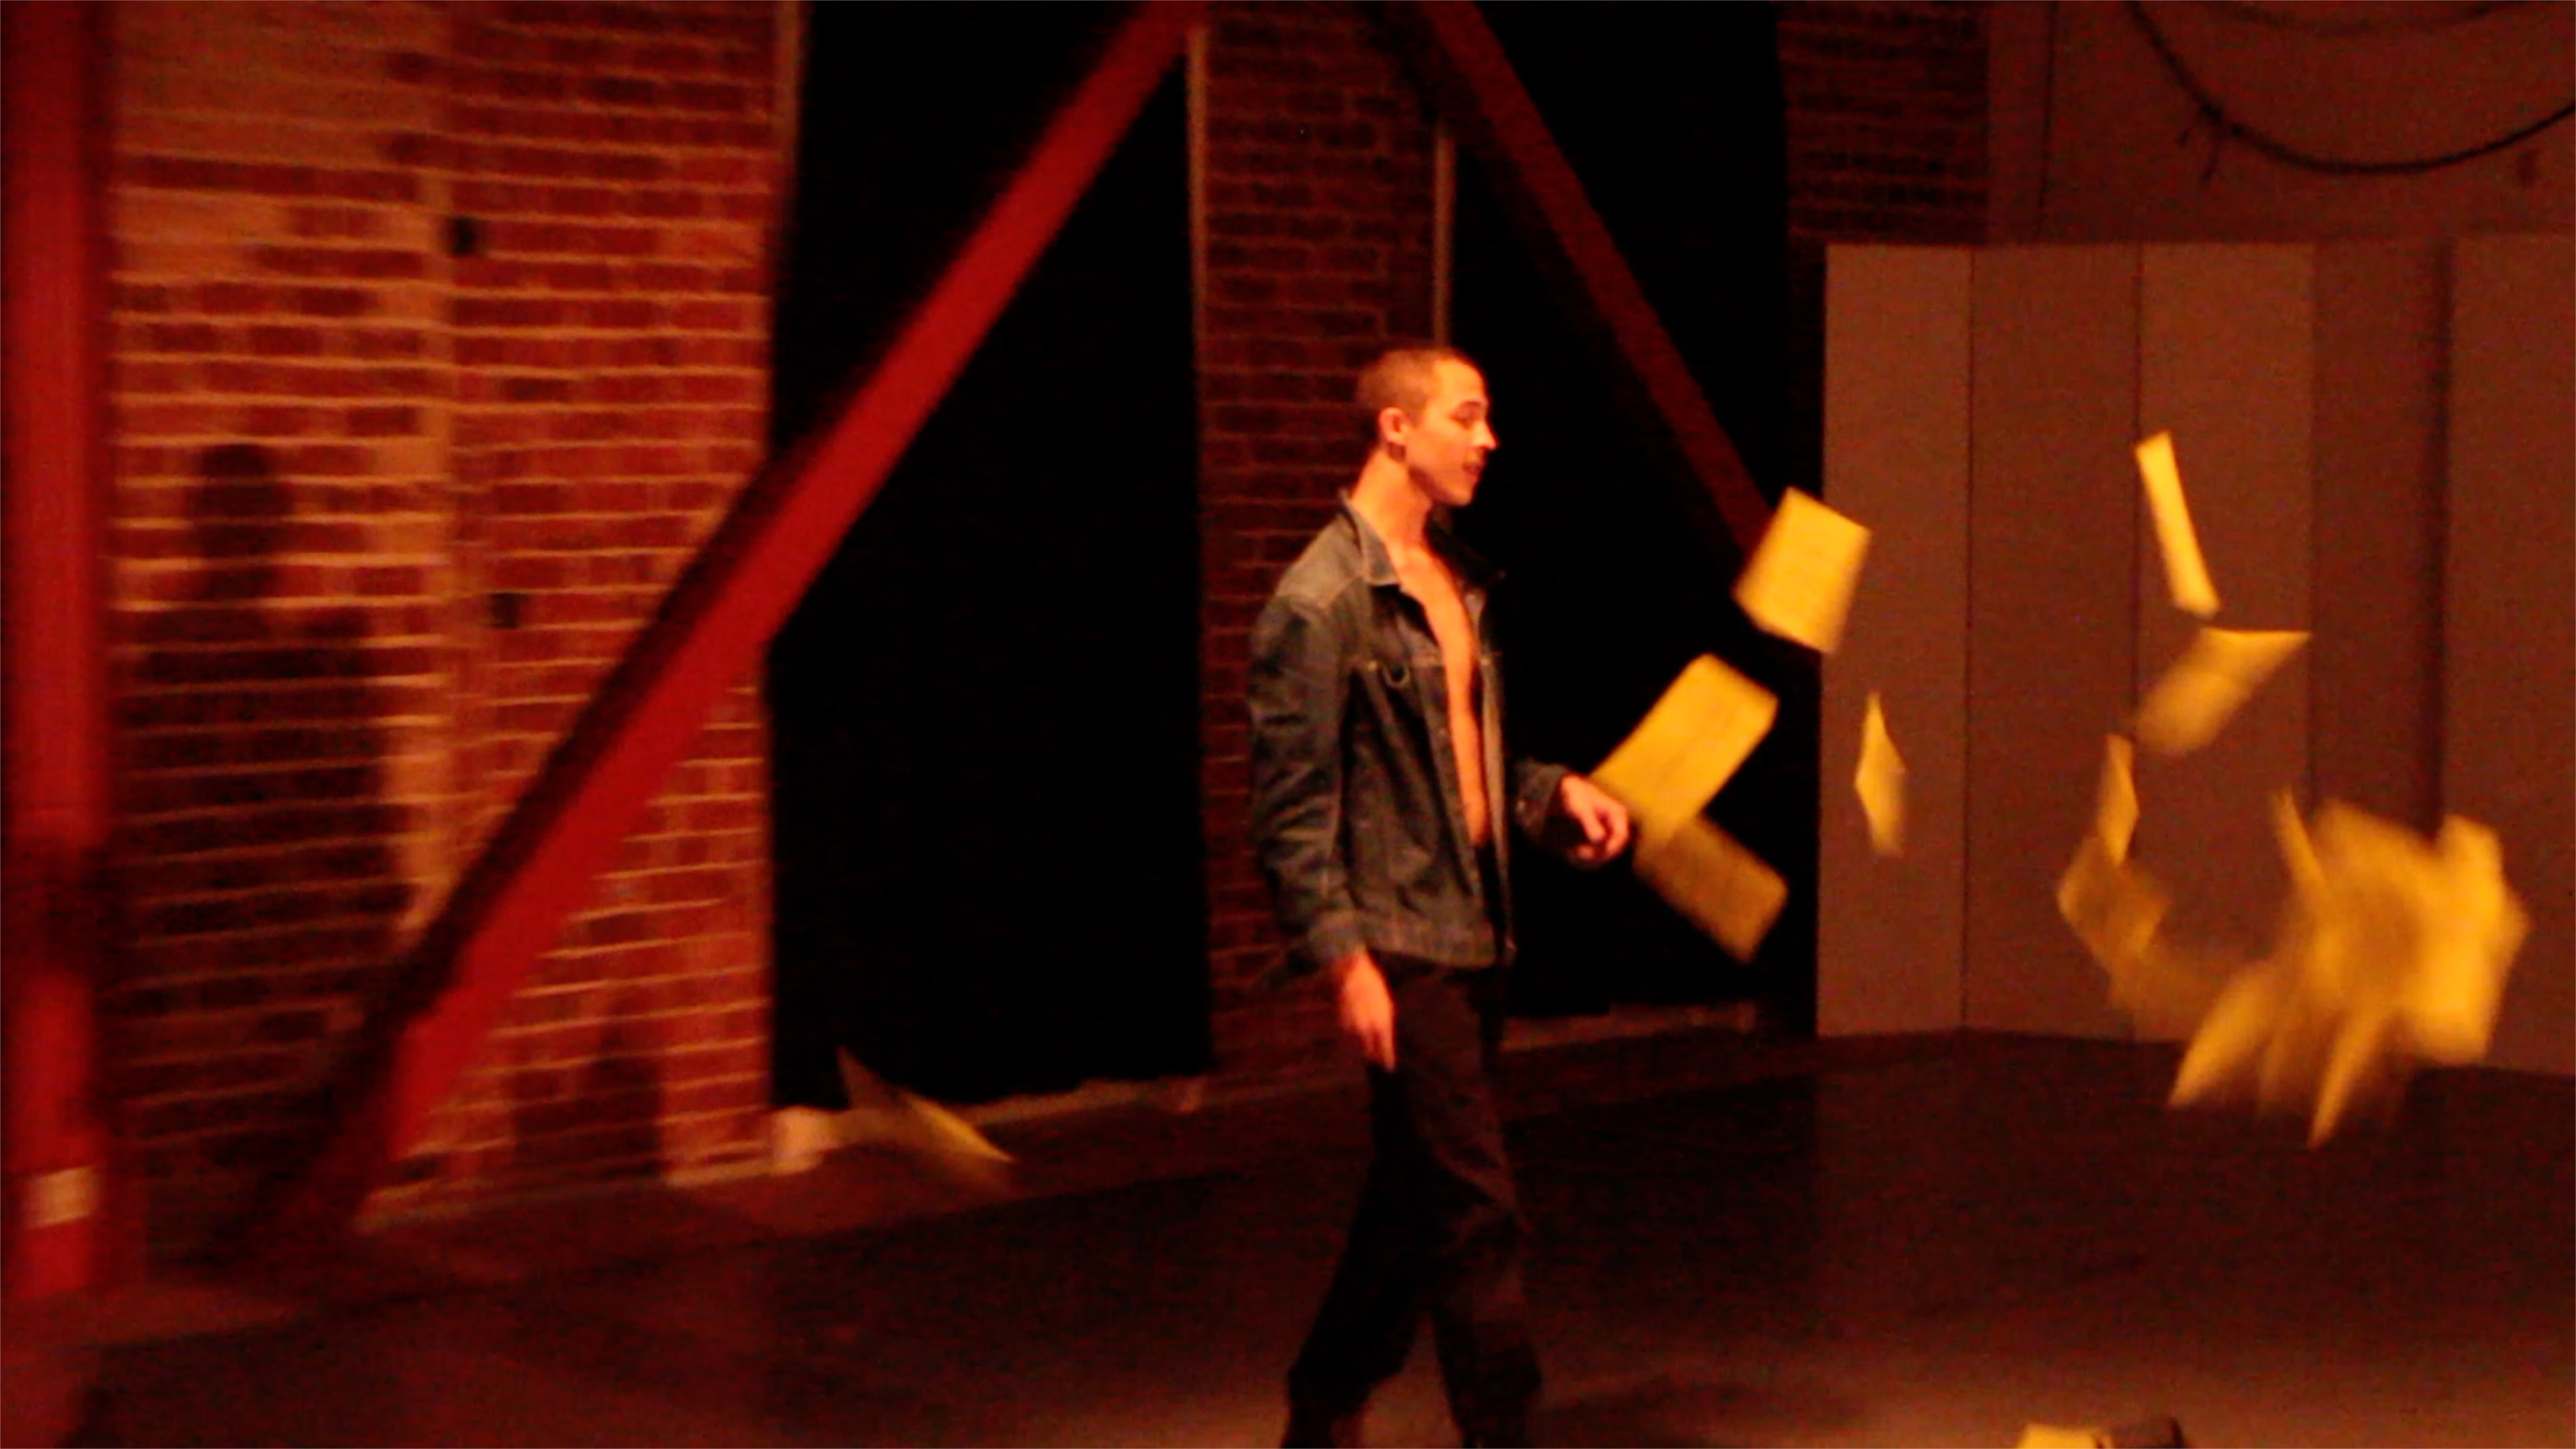 Dalton Alexander stands in a jean jacket, black dickie pants, and boots as yellow papers fly in front of him on their way to the ground.